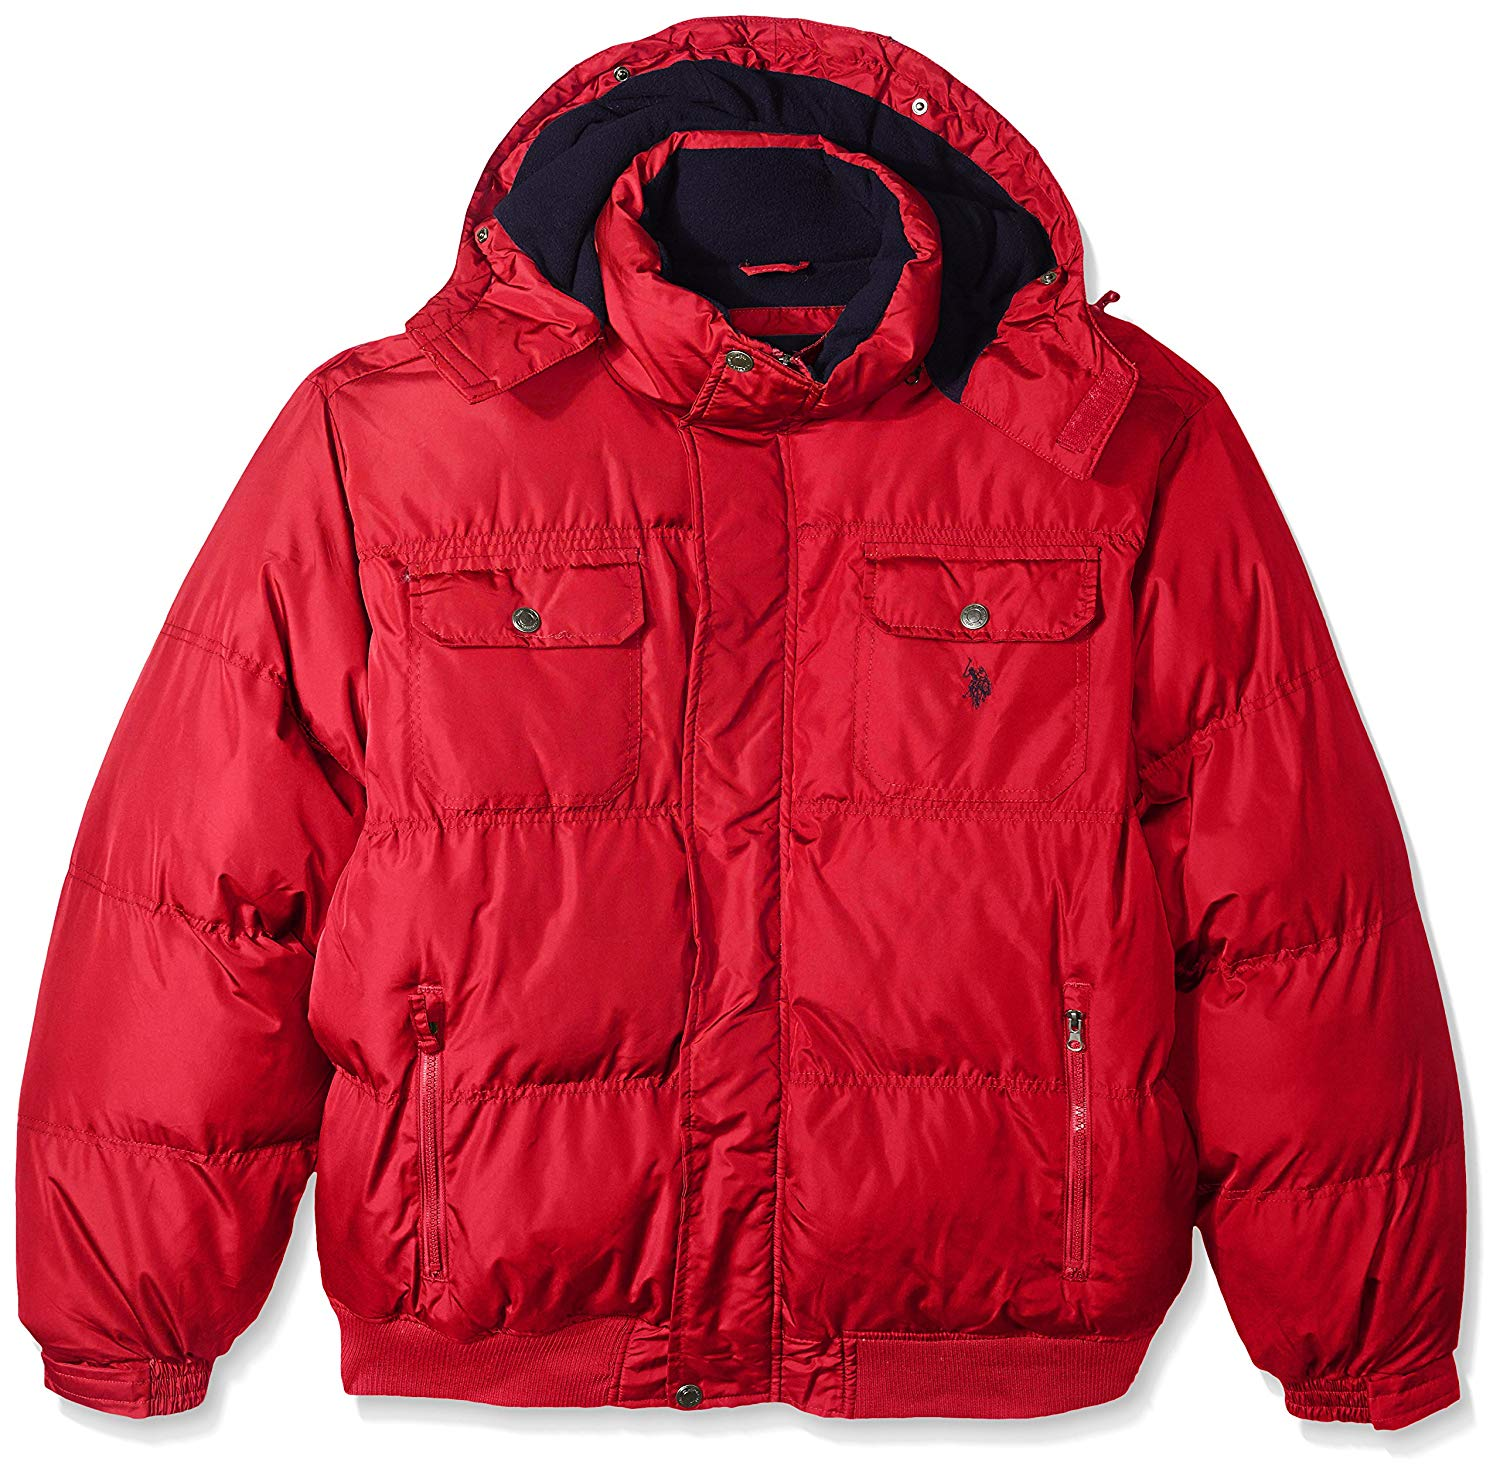 U-S-POLO-ASSN-Mens-Jacket-Red-Size-Big-2X-Hooded-Full-Zip-Puffer